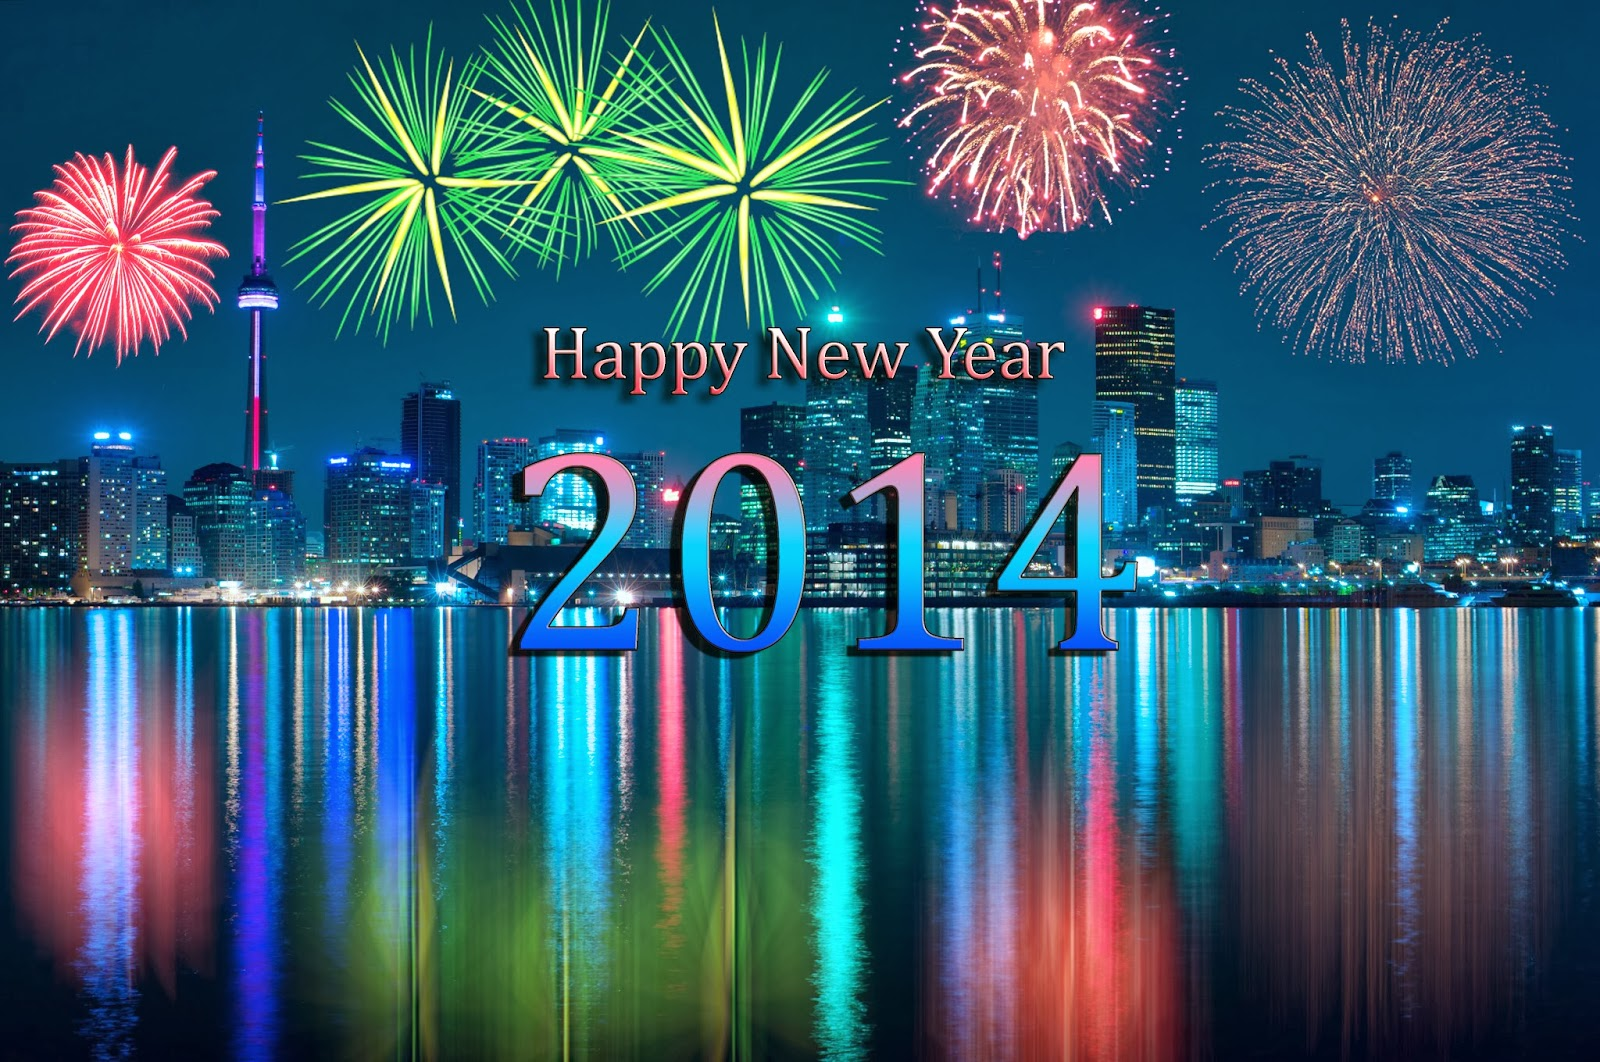 new year 2014 wallpapers